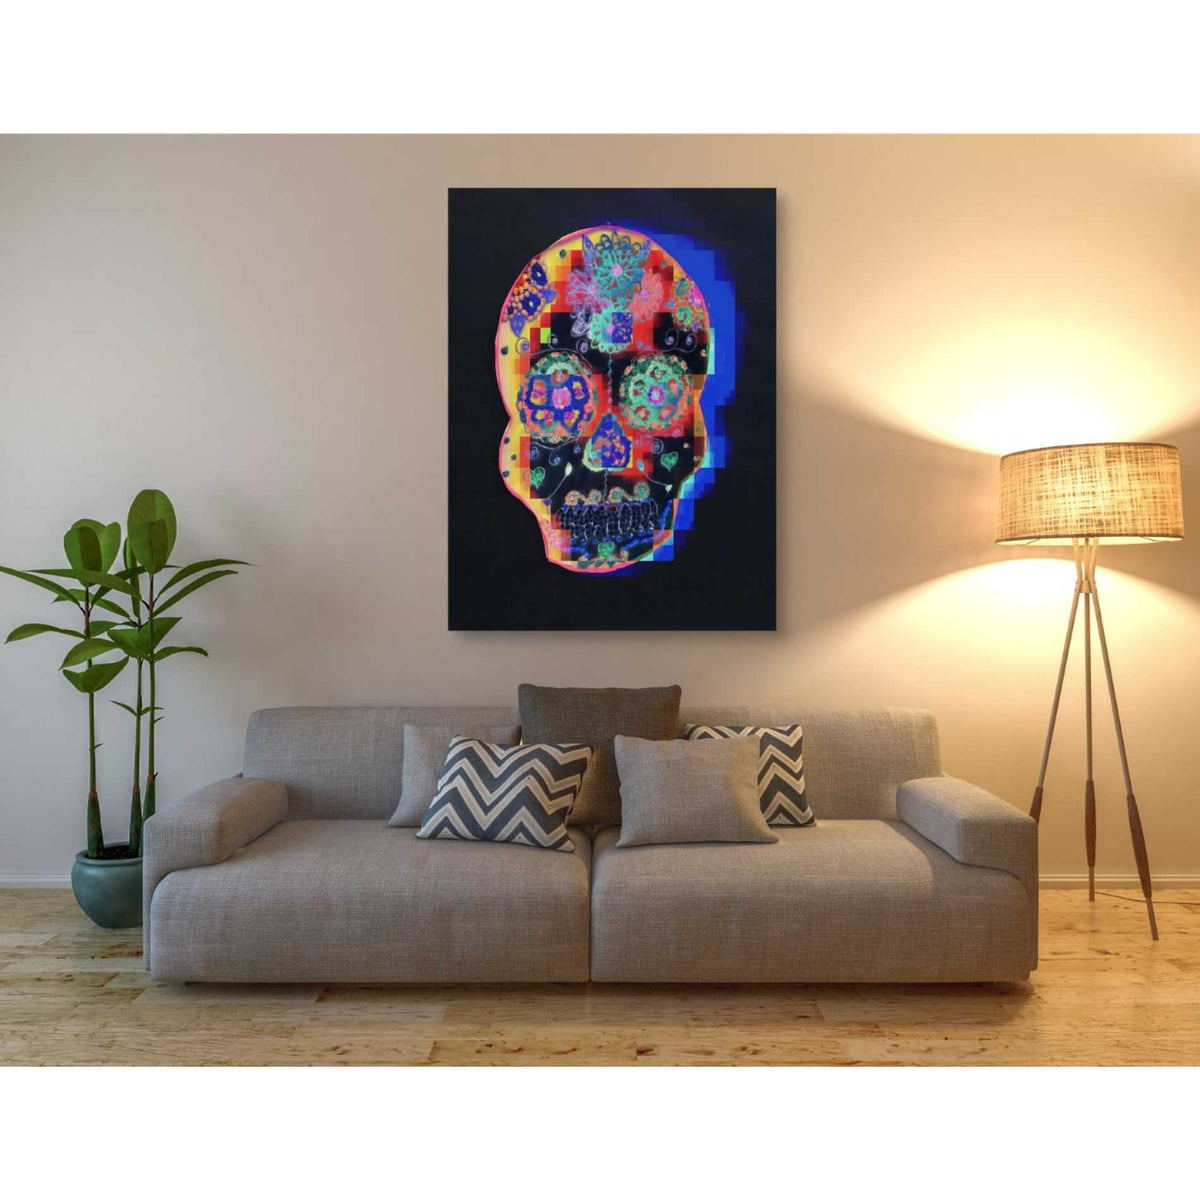 Epic Graffiti 'Colorful Skull' by Irena Orlov, Giclee Canvas Wall Art